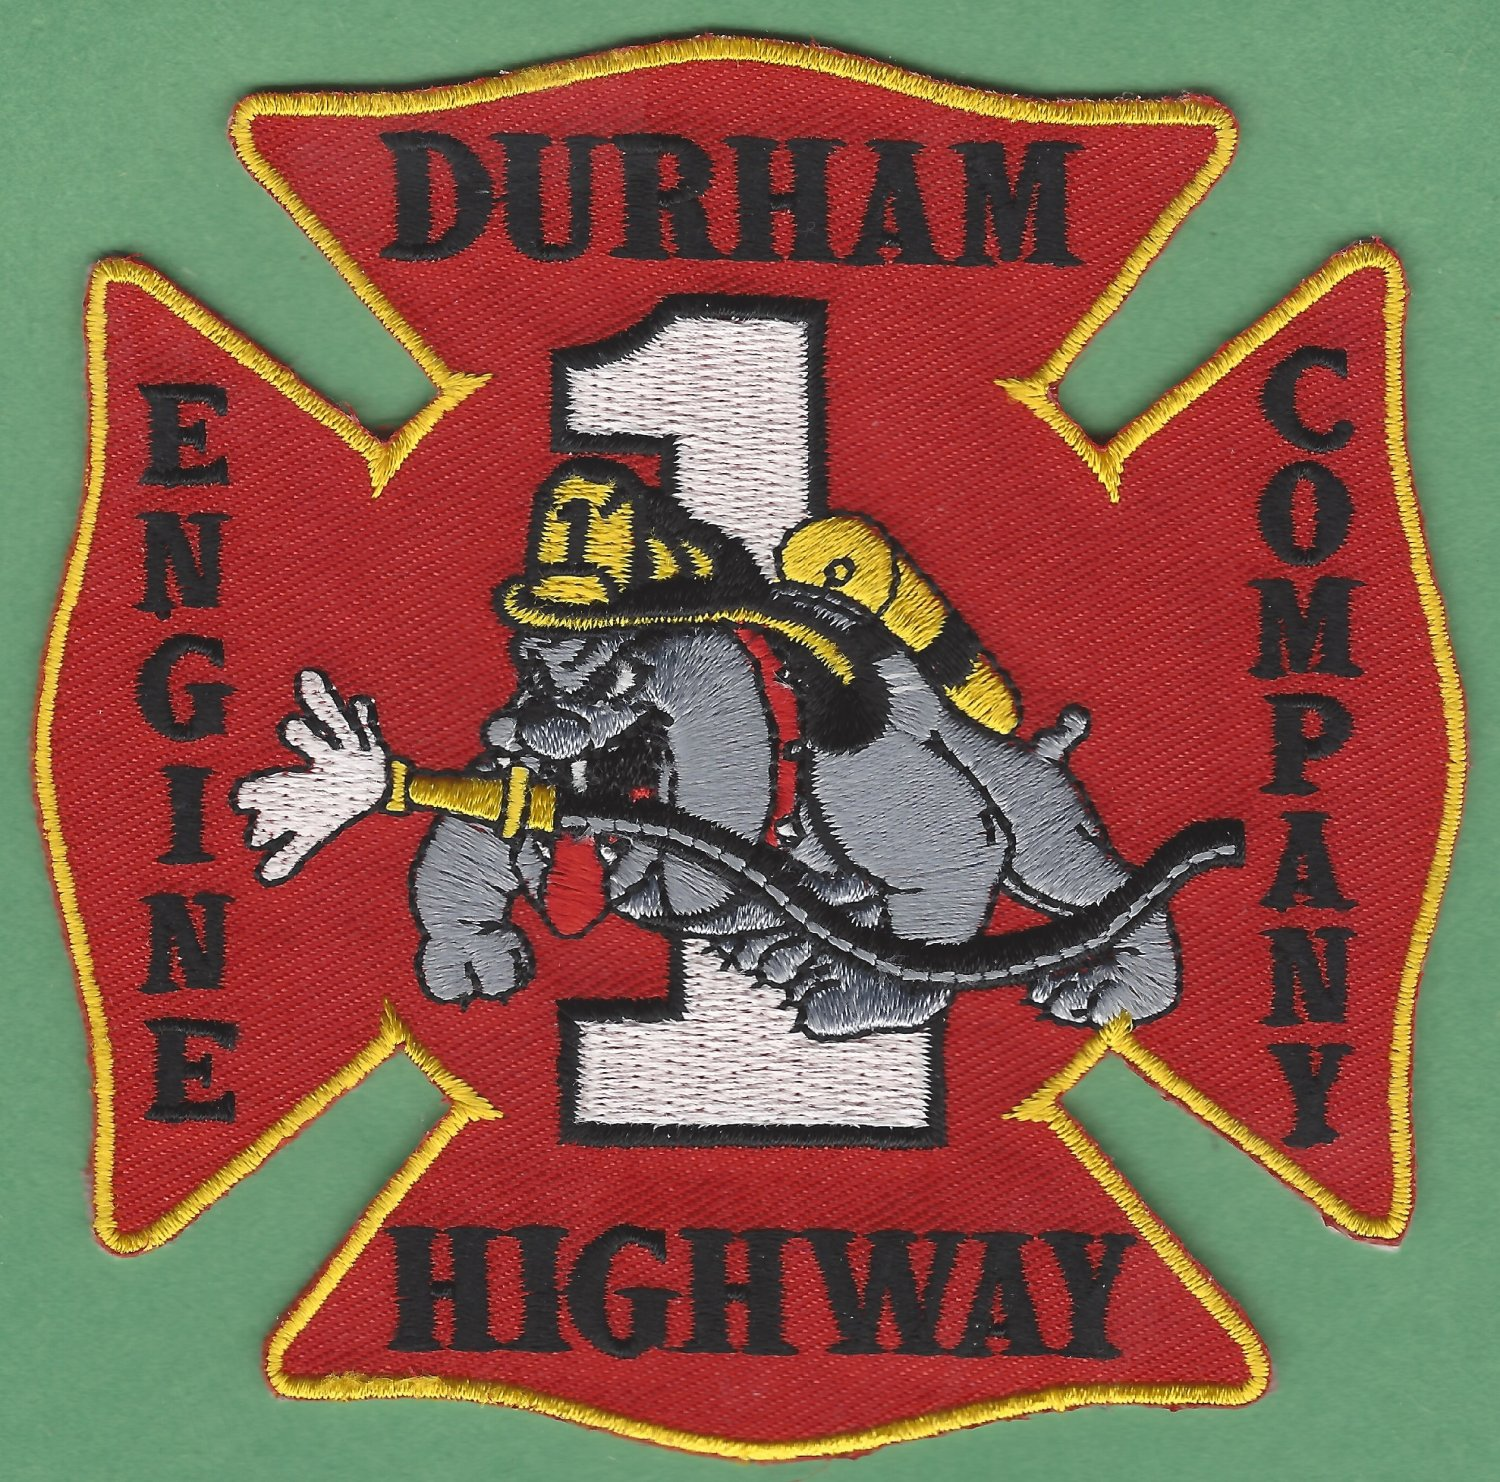 DURHAM HIGHWAY RALEIGH NORTH CAROLINA FIRE RESCUE PATCH